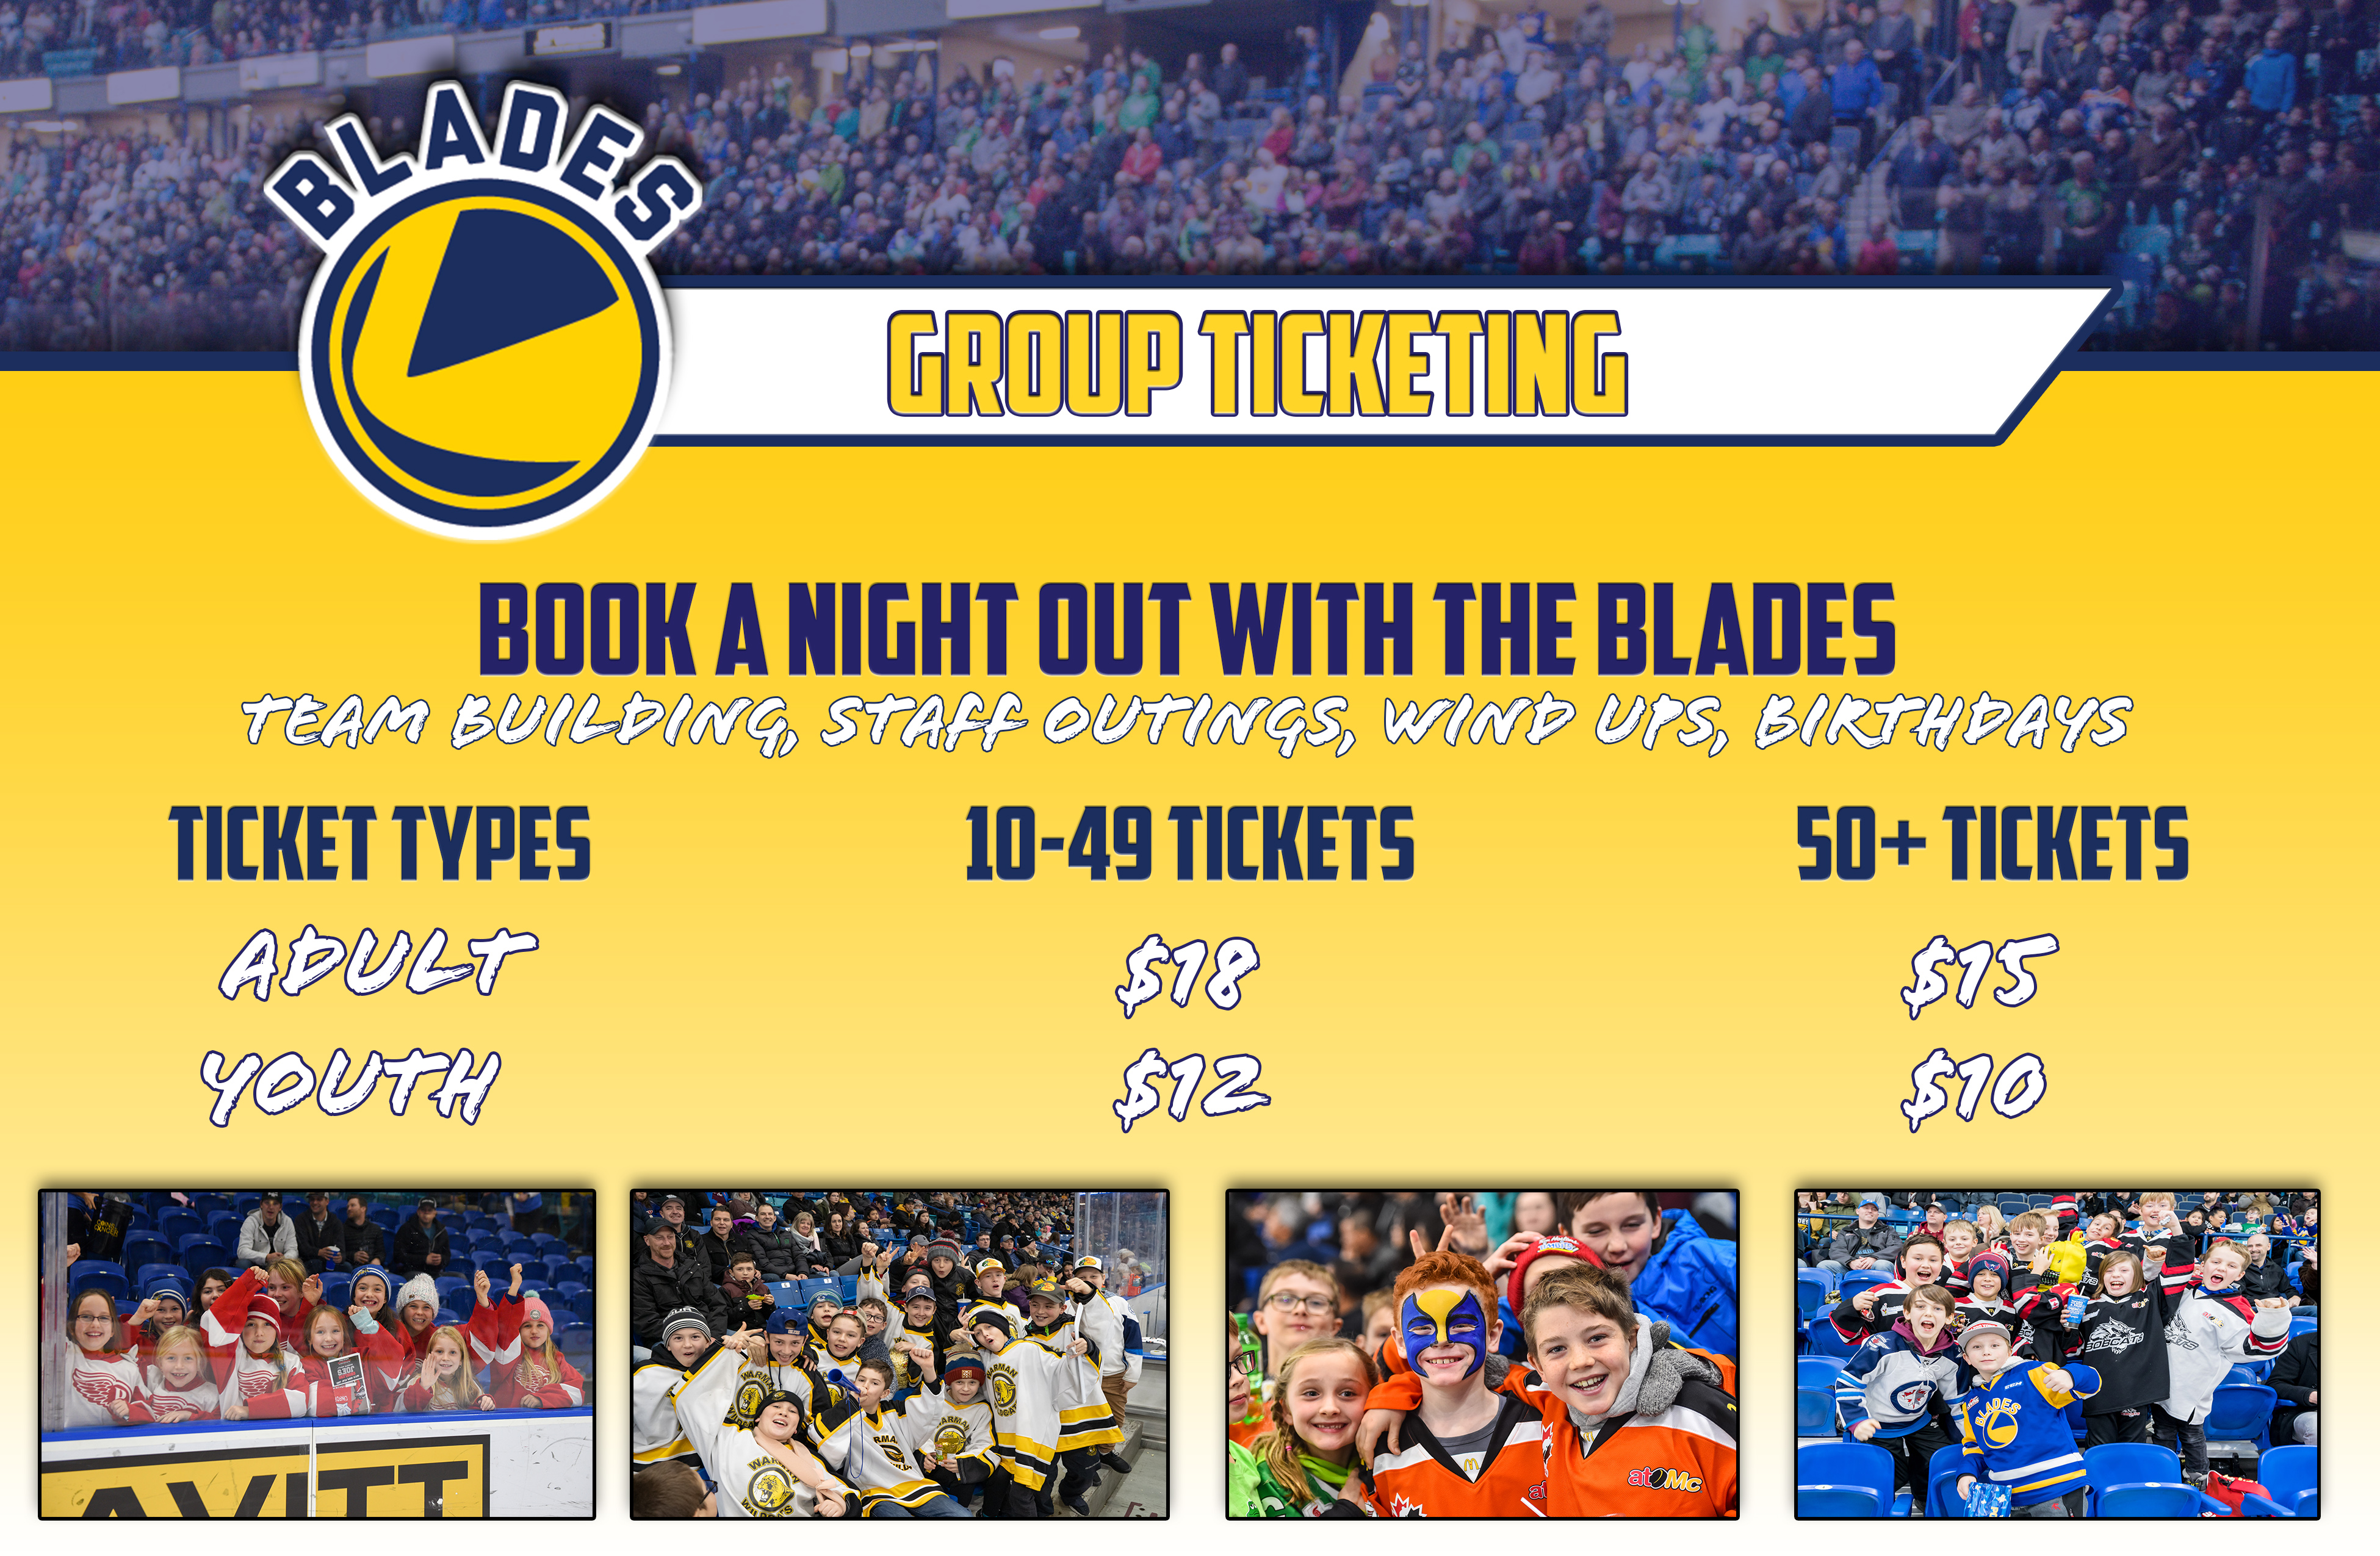 Group Ticketing - updated